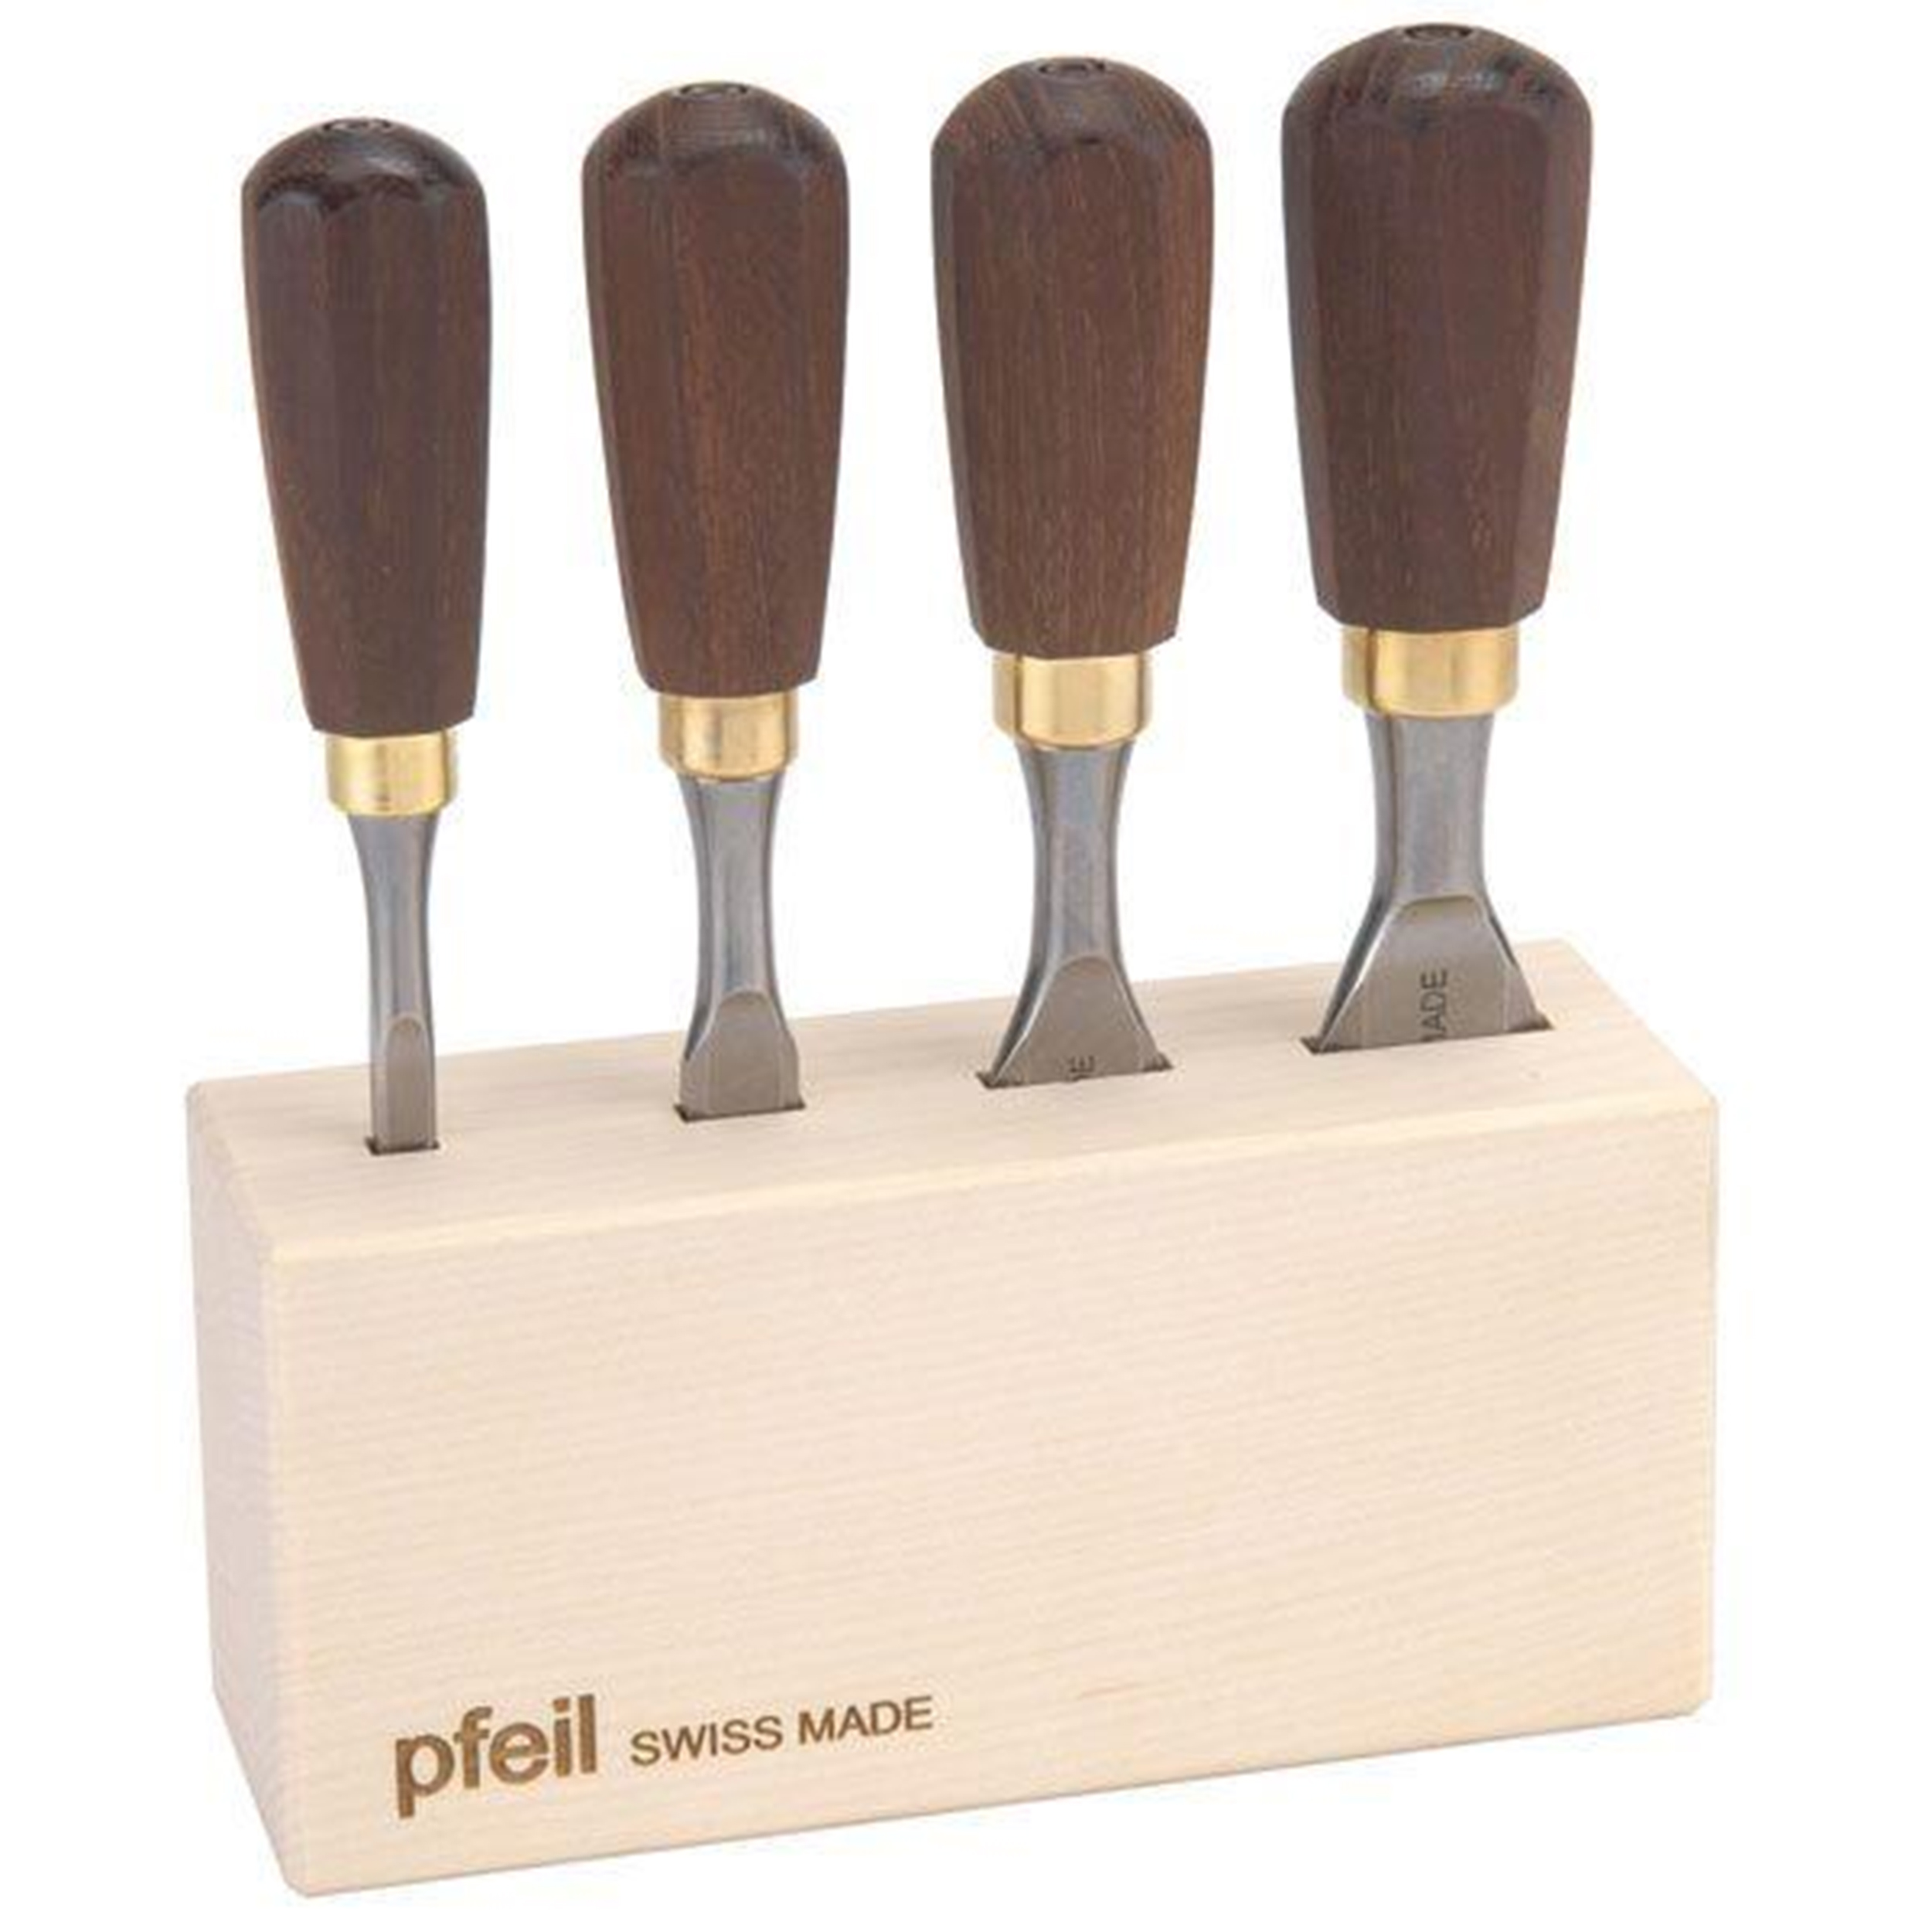 "PFEIL ""Swiss Made"" Butt Chisel Set of Four"